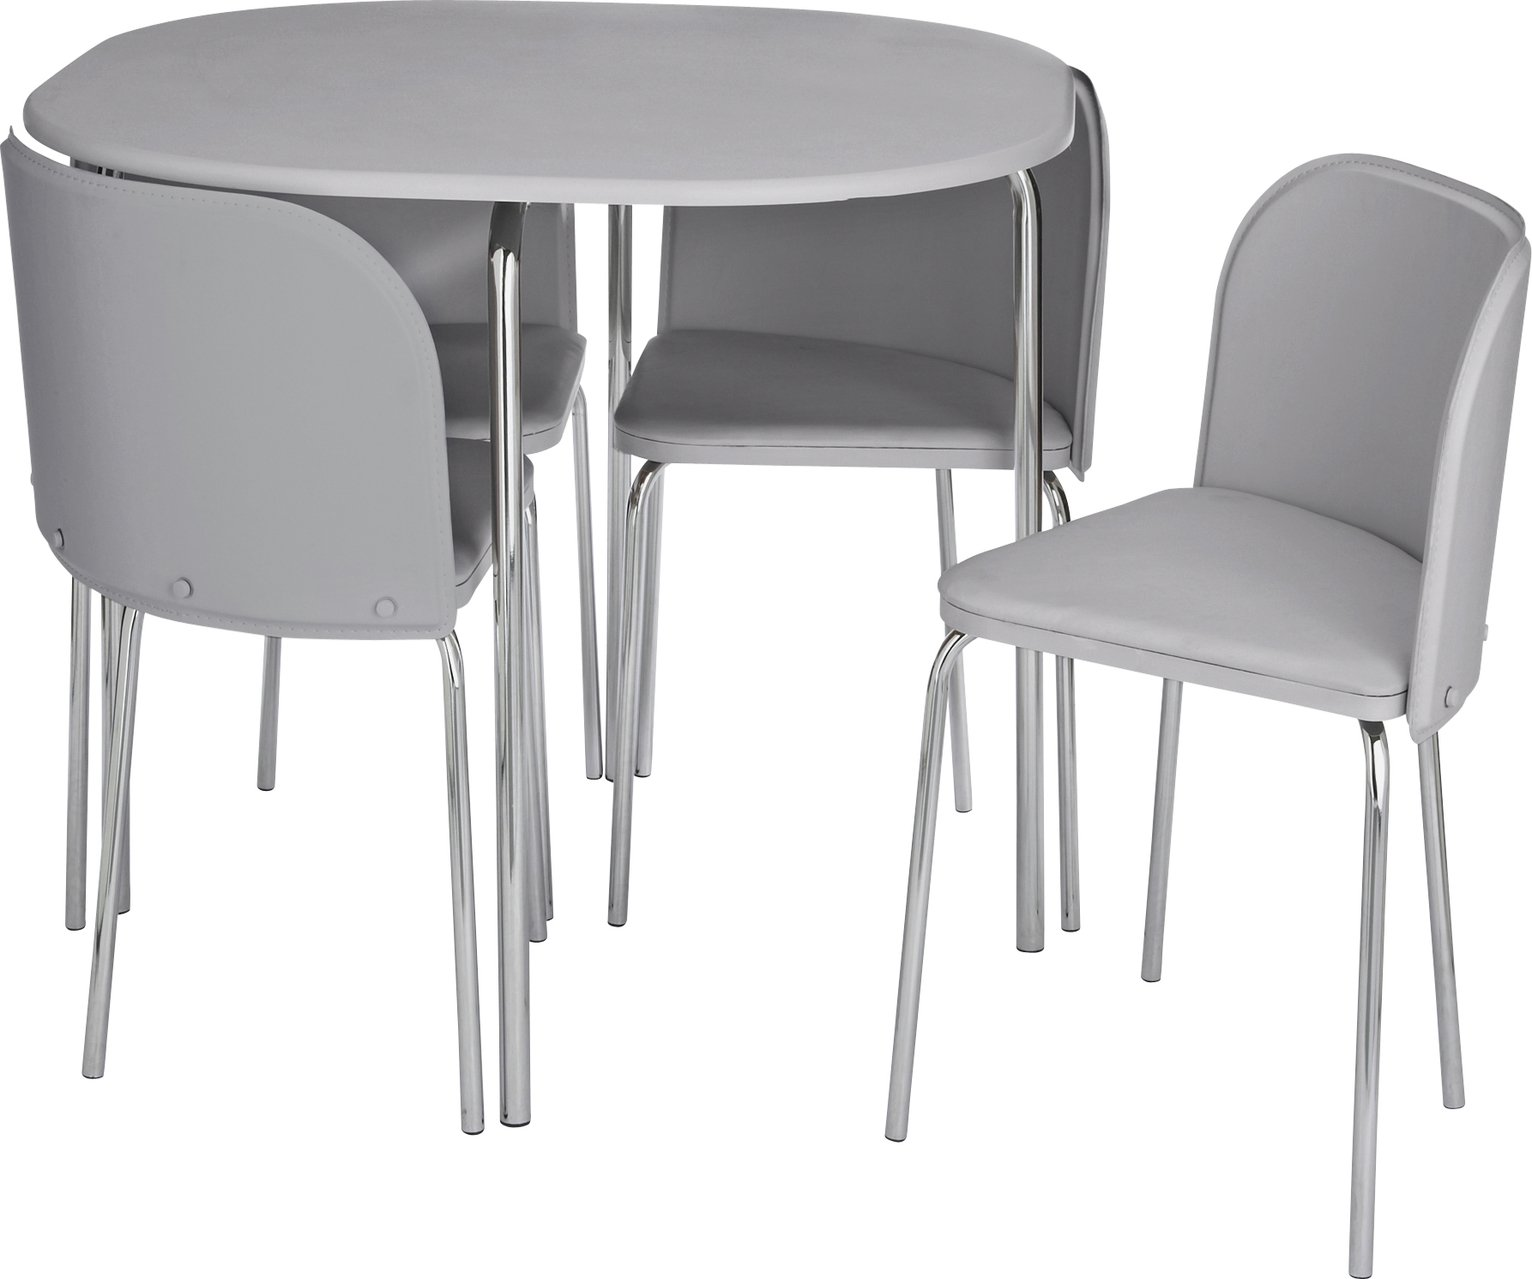 hideaway table and chairs argos pink for sale space saving dining sets compact home amparo white